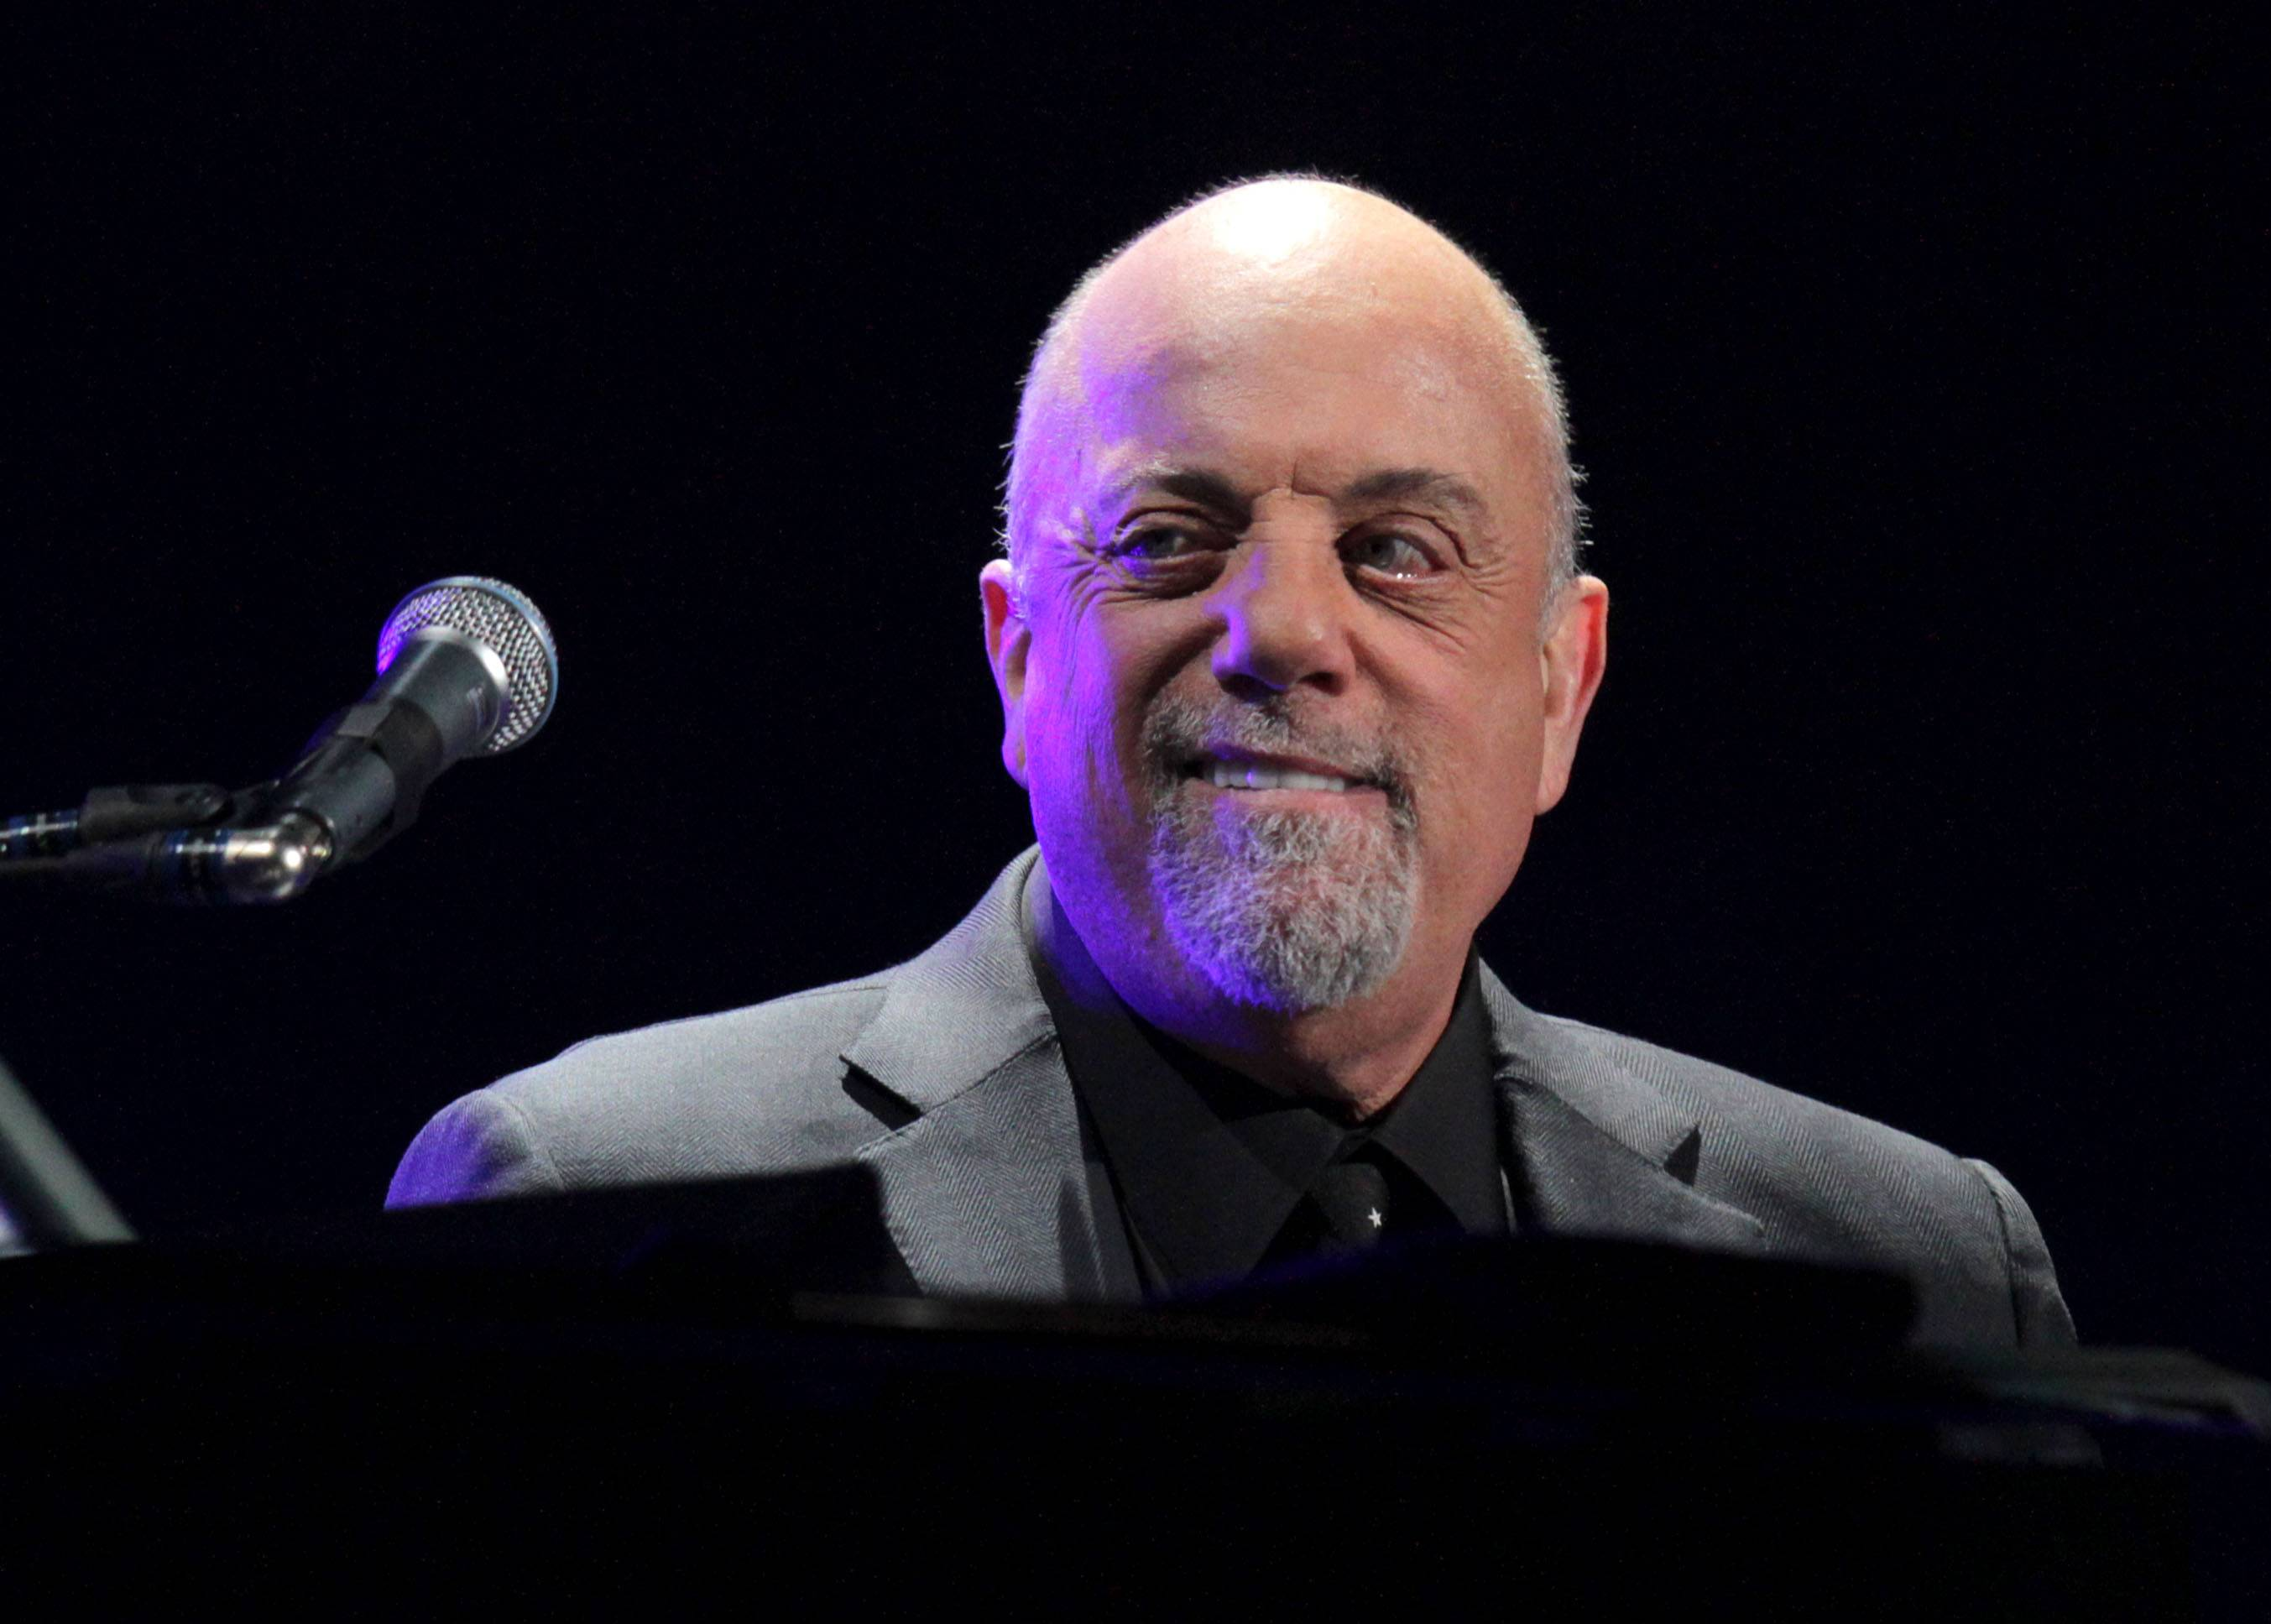 Billy Joel will be among those featured in an upcoming PBS documentary about the post-World War II generation.